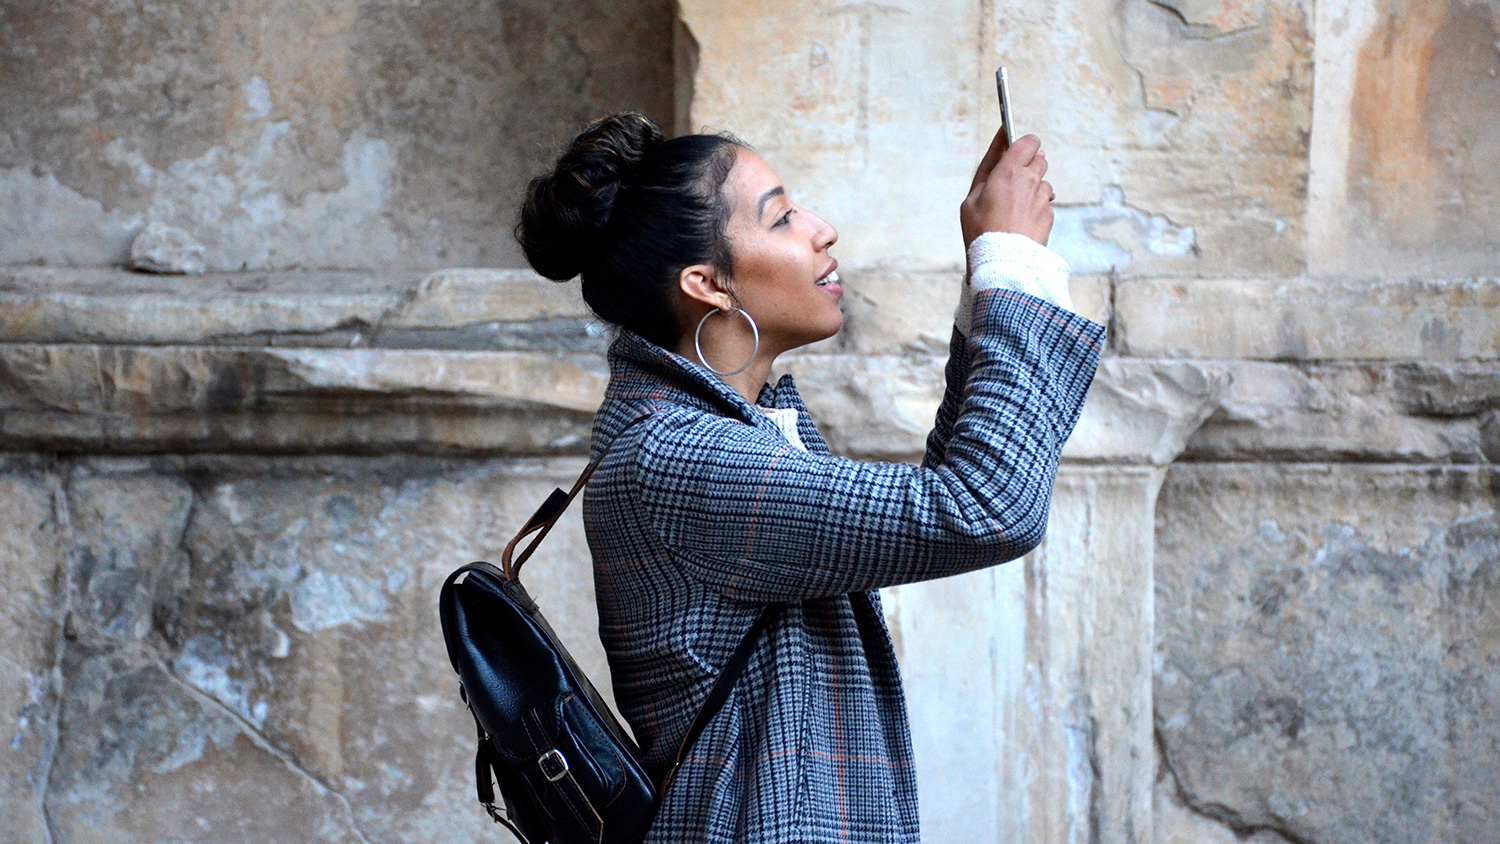 woman taking a photo with her phone